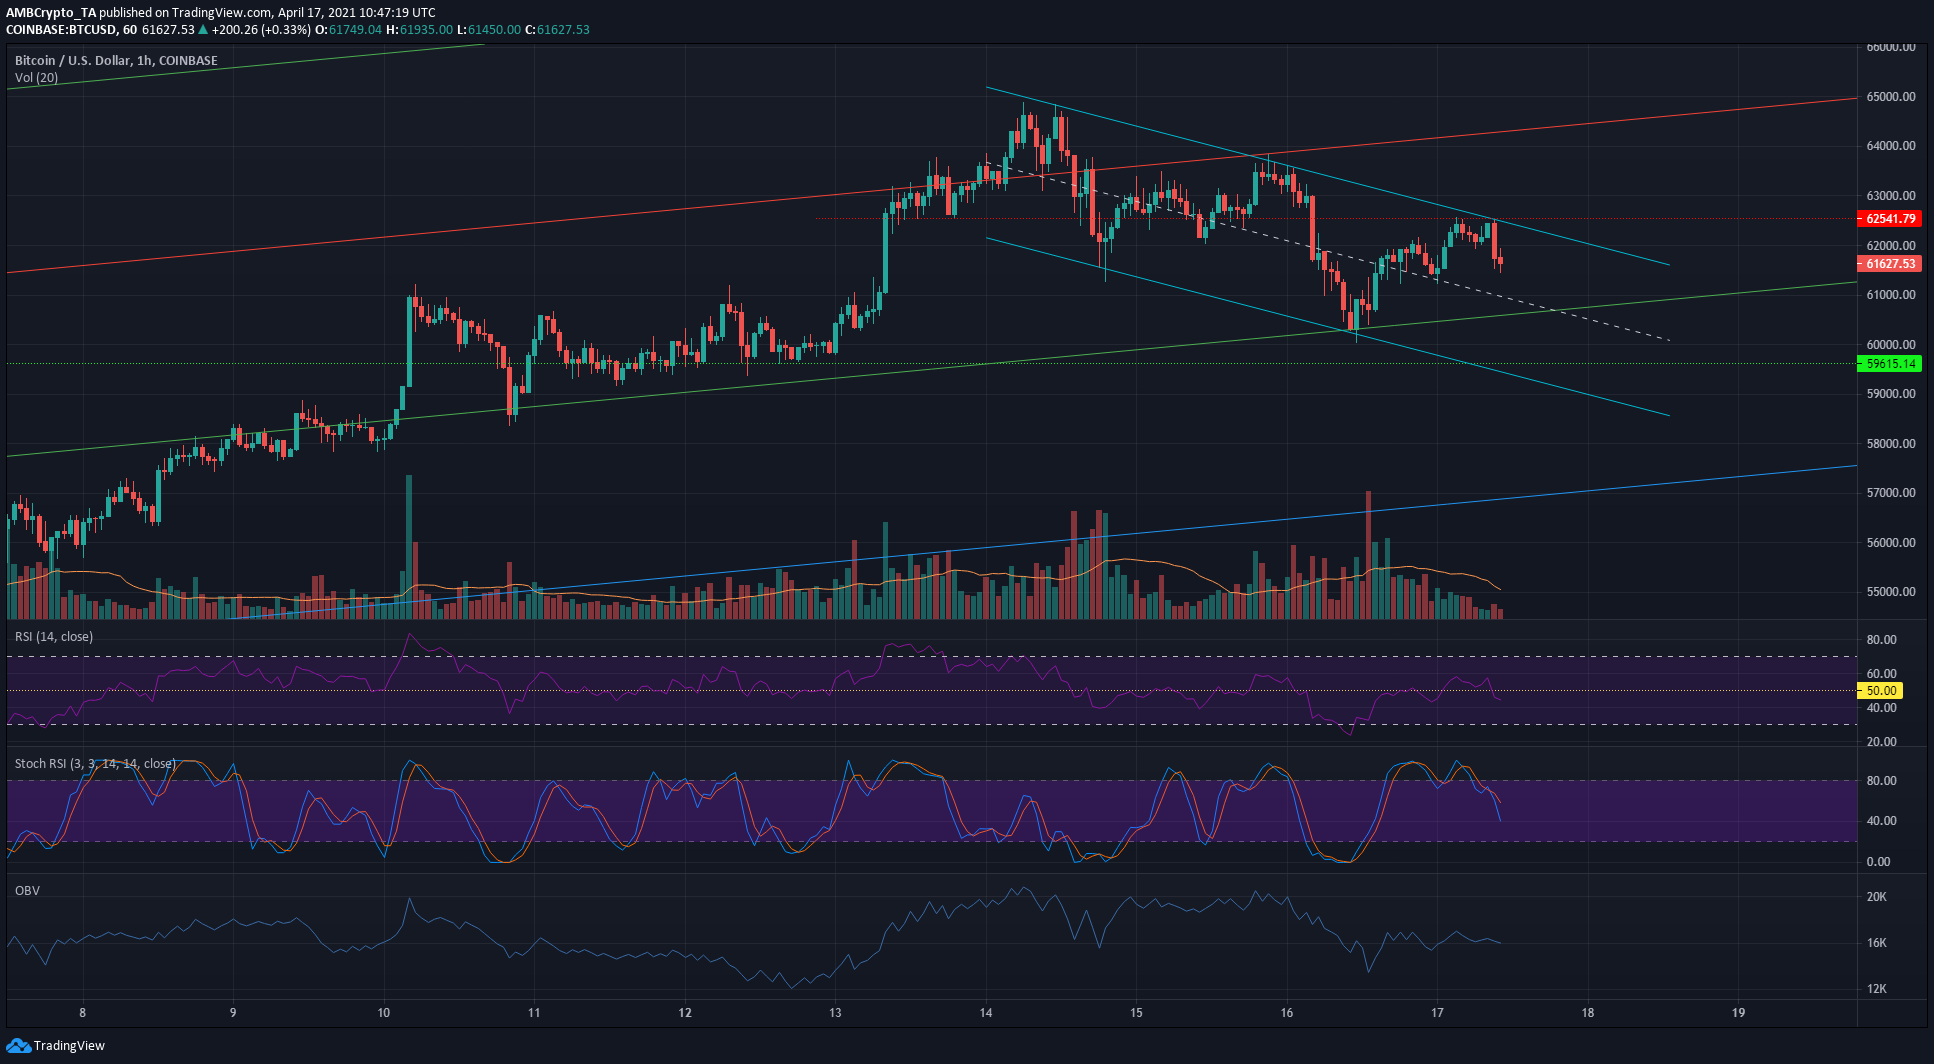 Bitcoin Price Analysis: 17 April